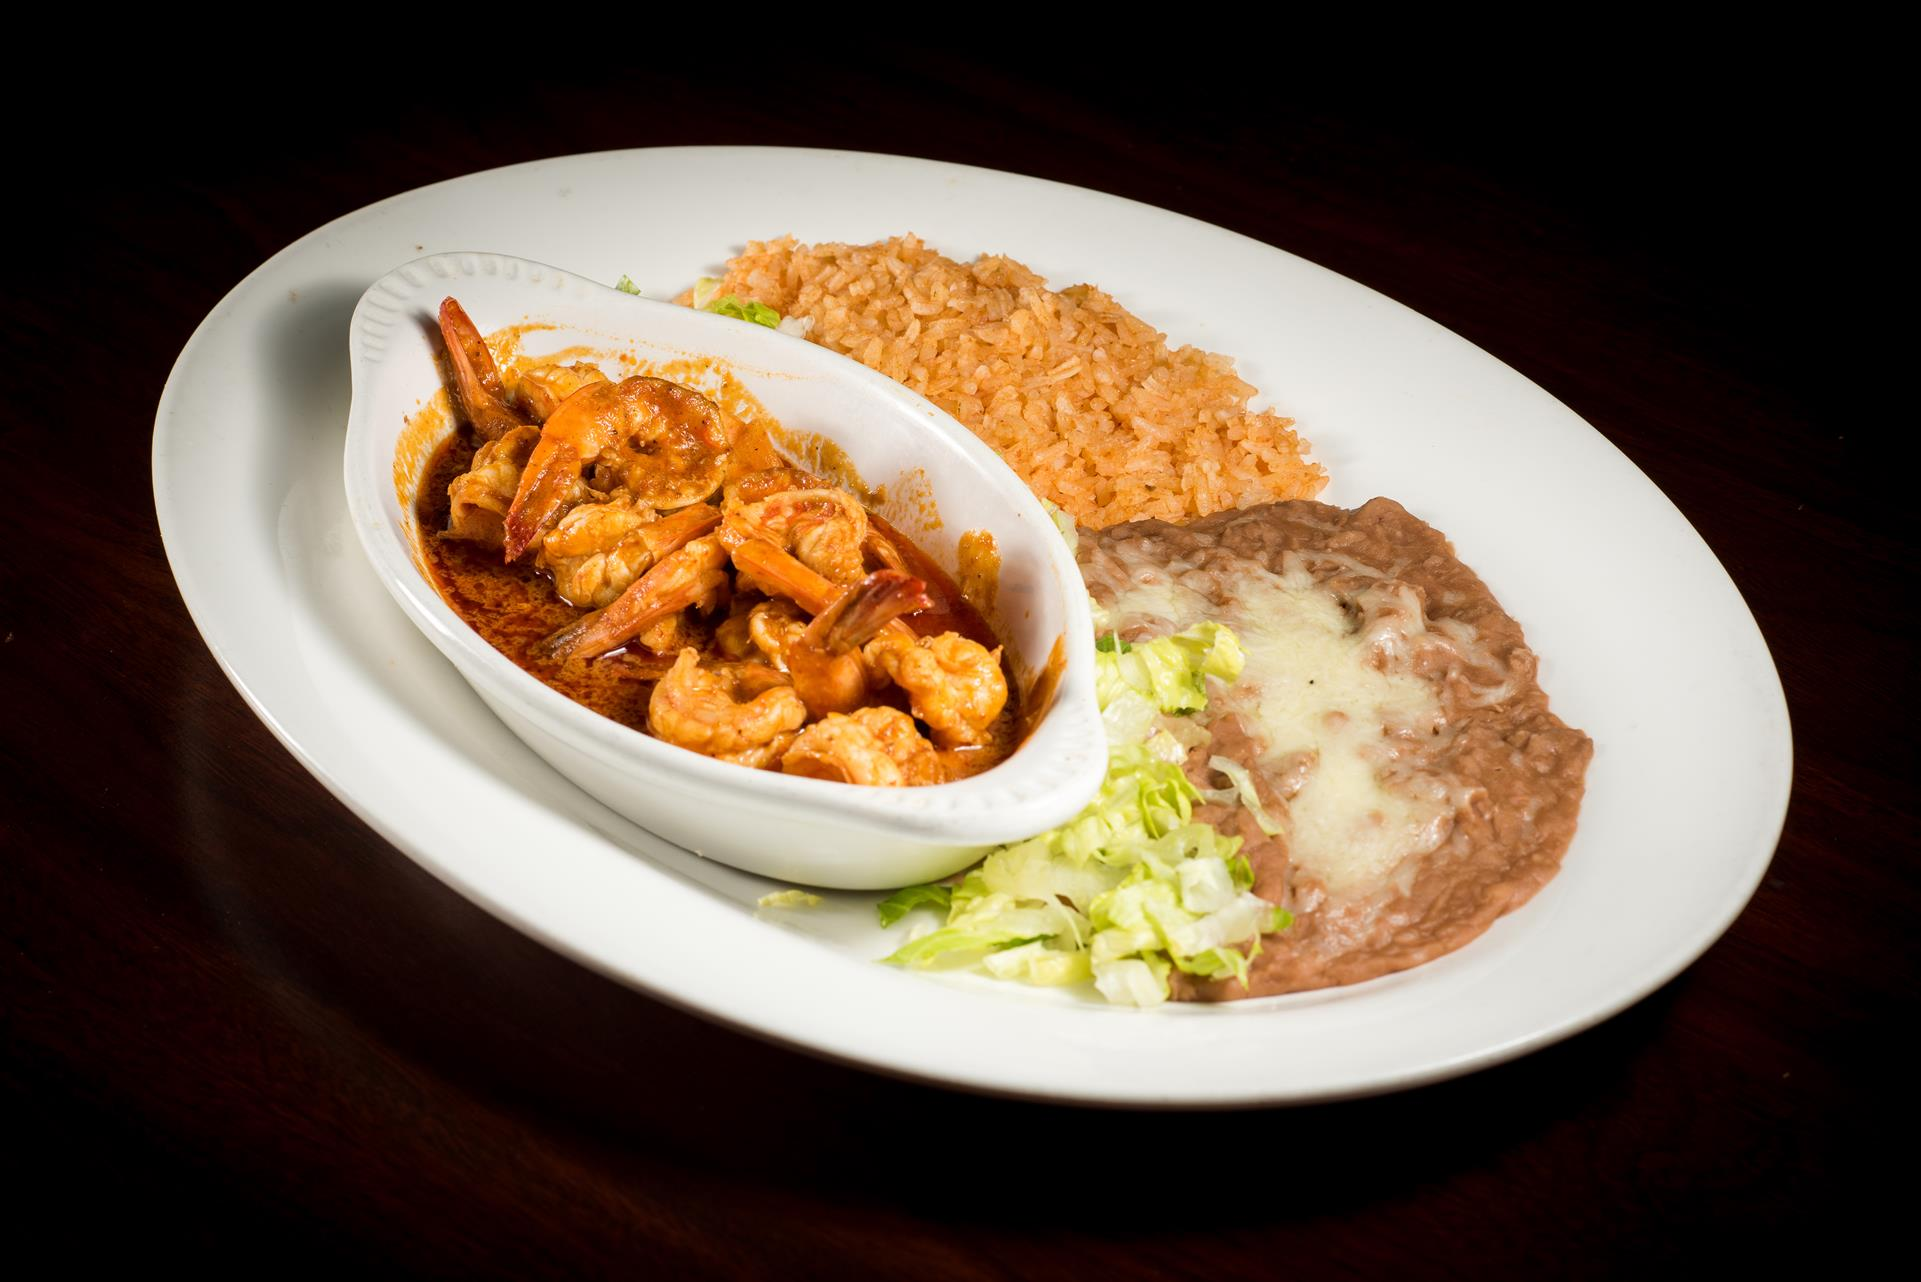 Shrimp A La Diabla: Sauteed prawns in our hot spicy sauce served with lettuce and pico de gallo.